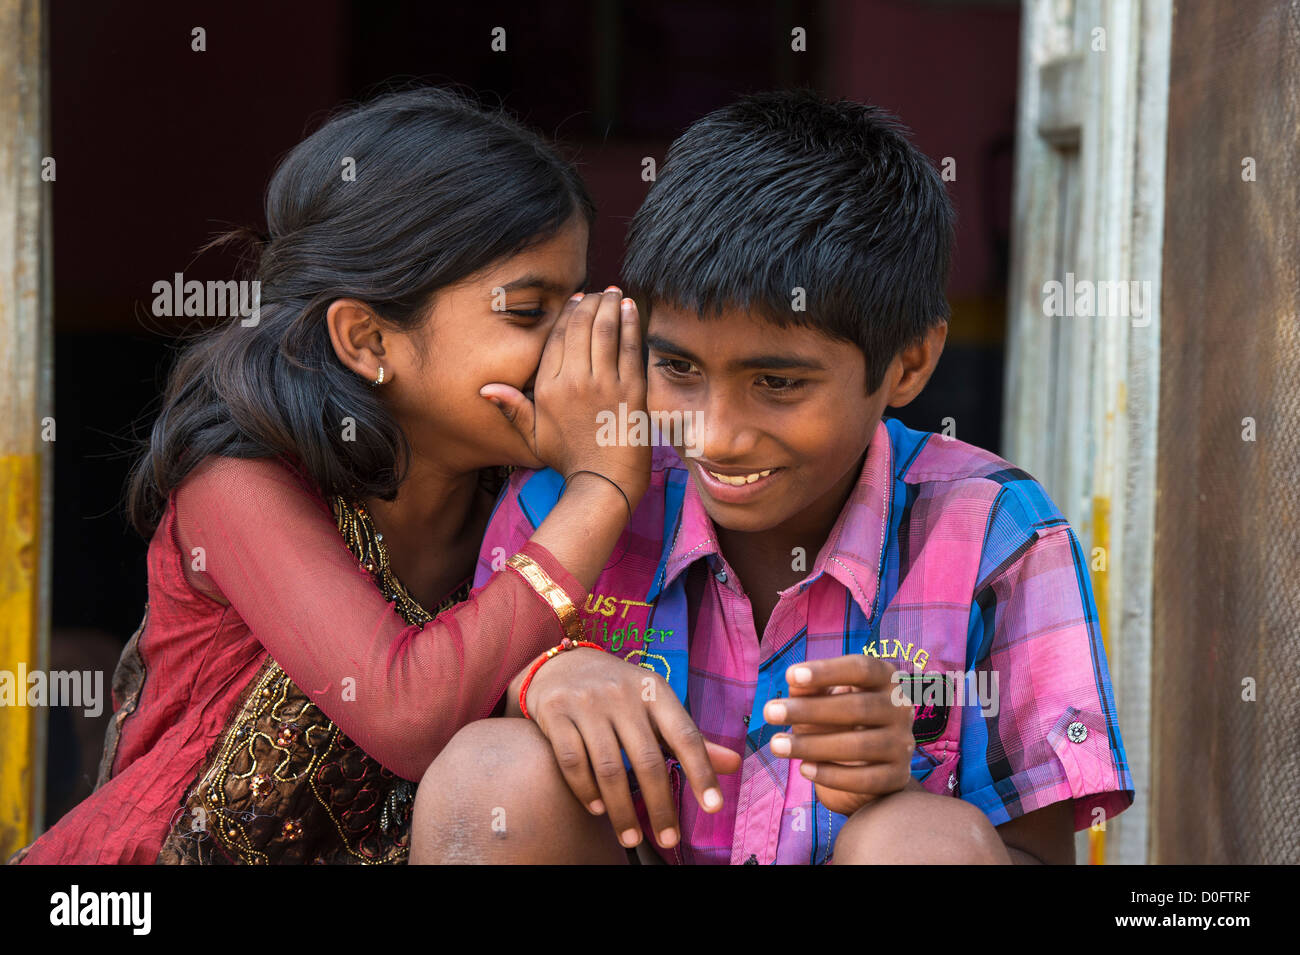 Young Indian girl whispering to a boy outside their rural Indian viilage home. Andhra Pradesh, India Stock Foto